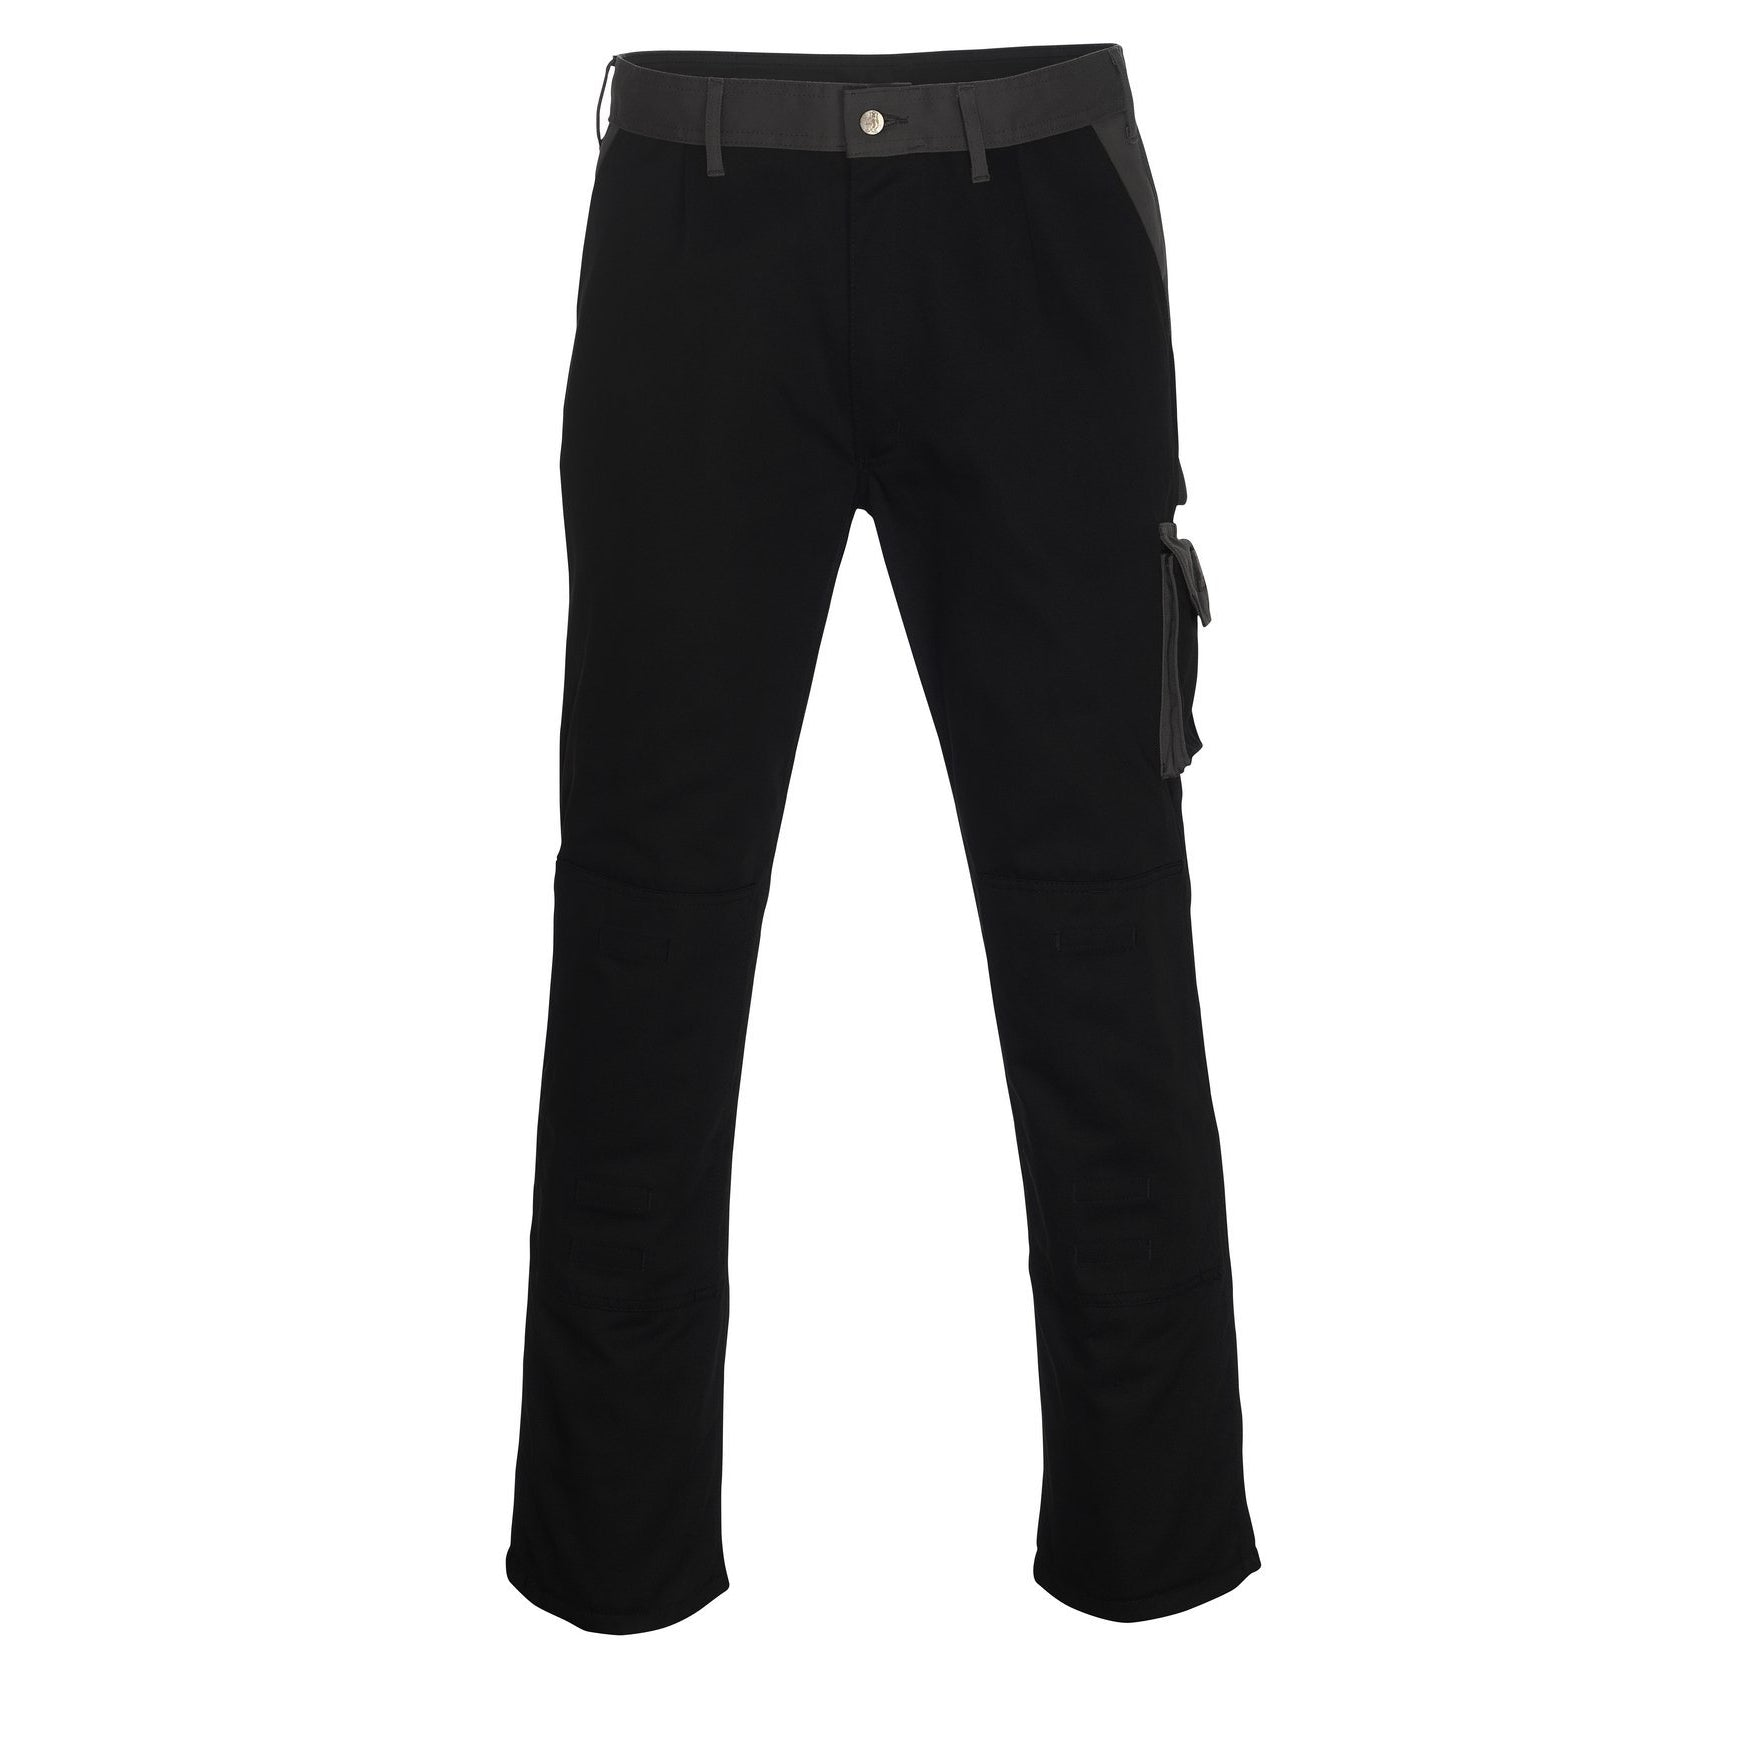 Mascot Torino Image Trousers With Kneepad Pockets